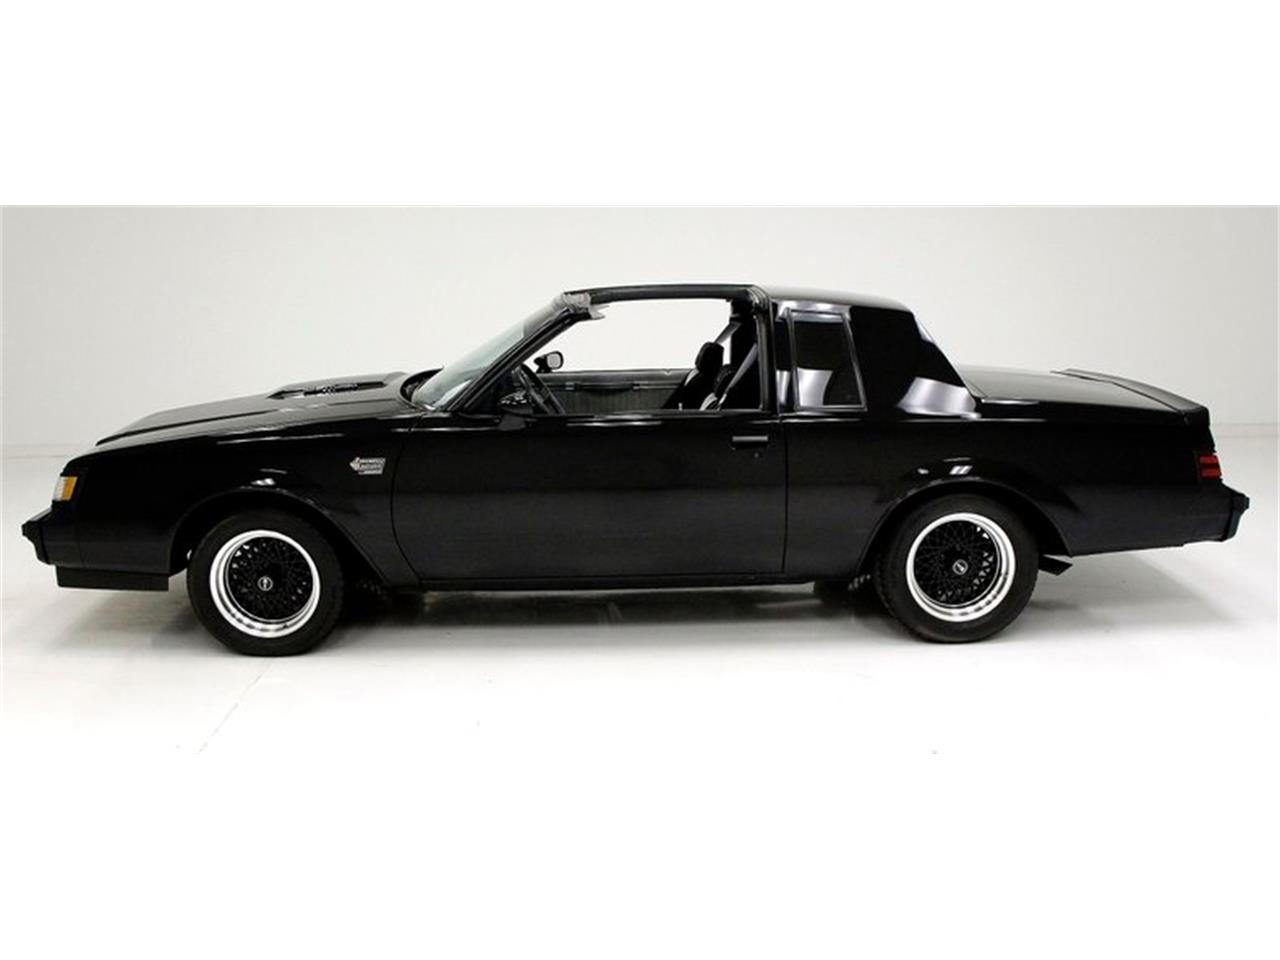 1987 Buick Grand National (CC-1255685) for sale in Morgantown, Pennsylvania